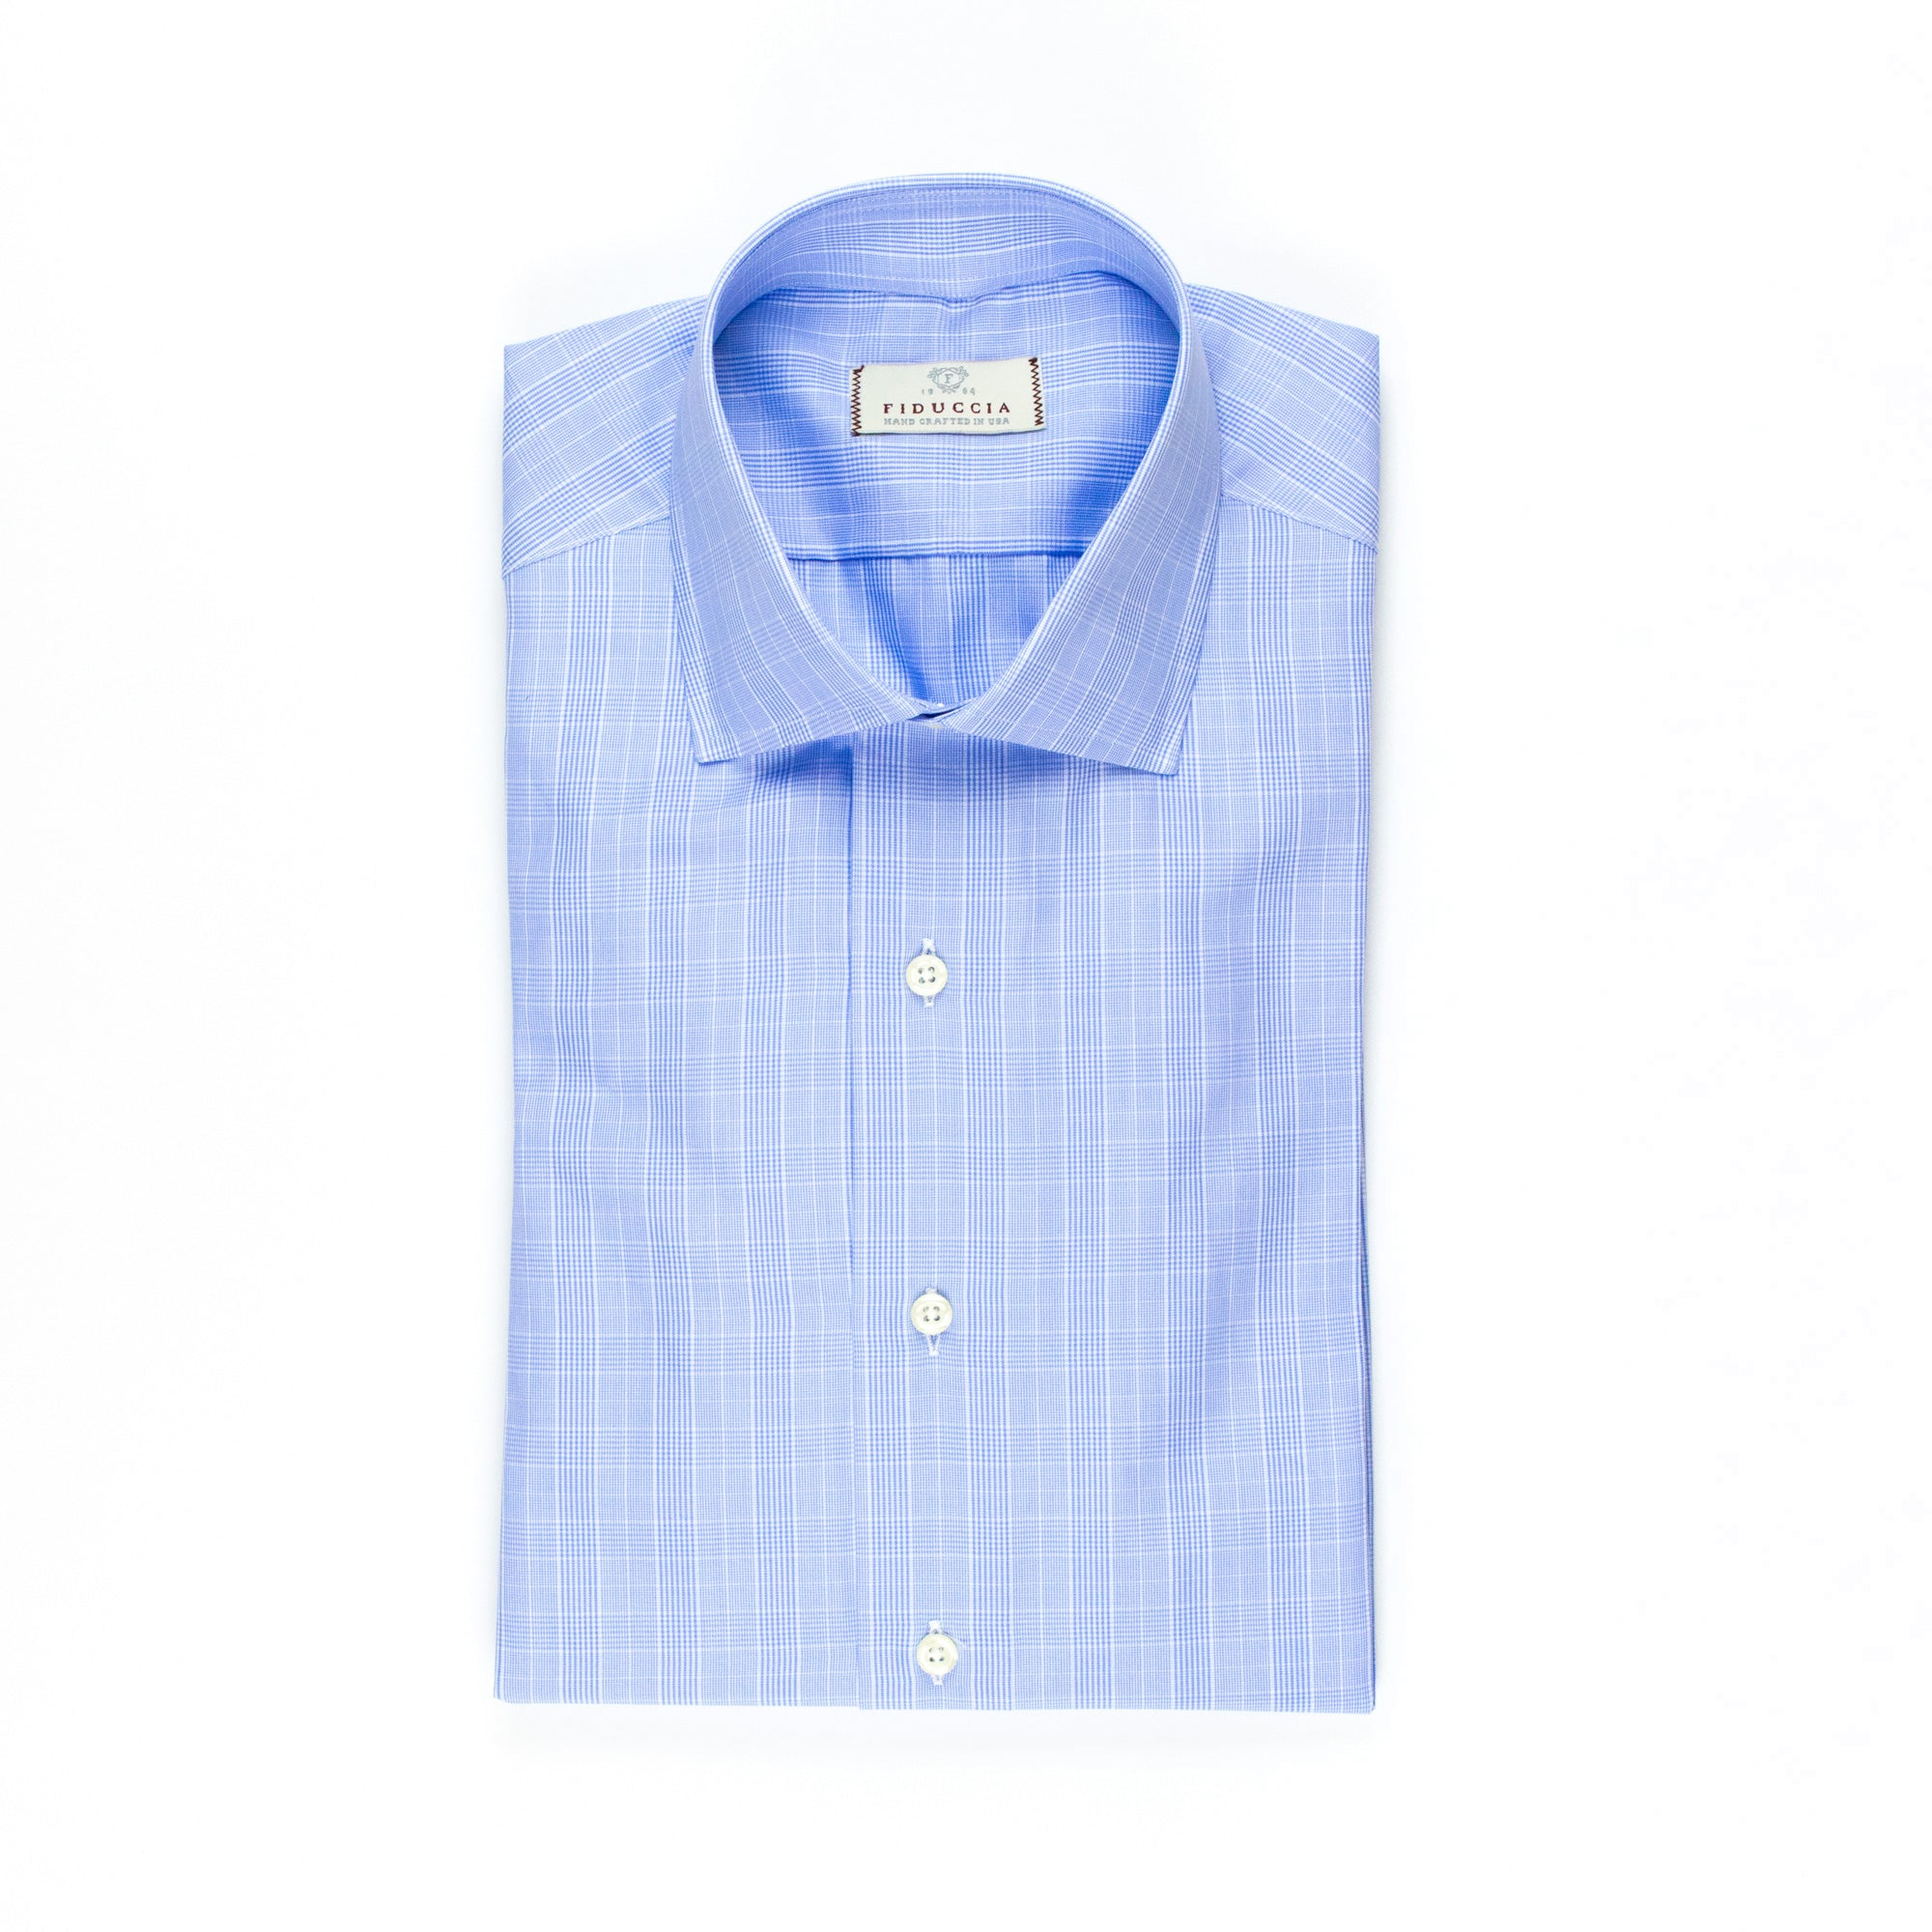 THE EDISON Dress Shirt